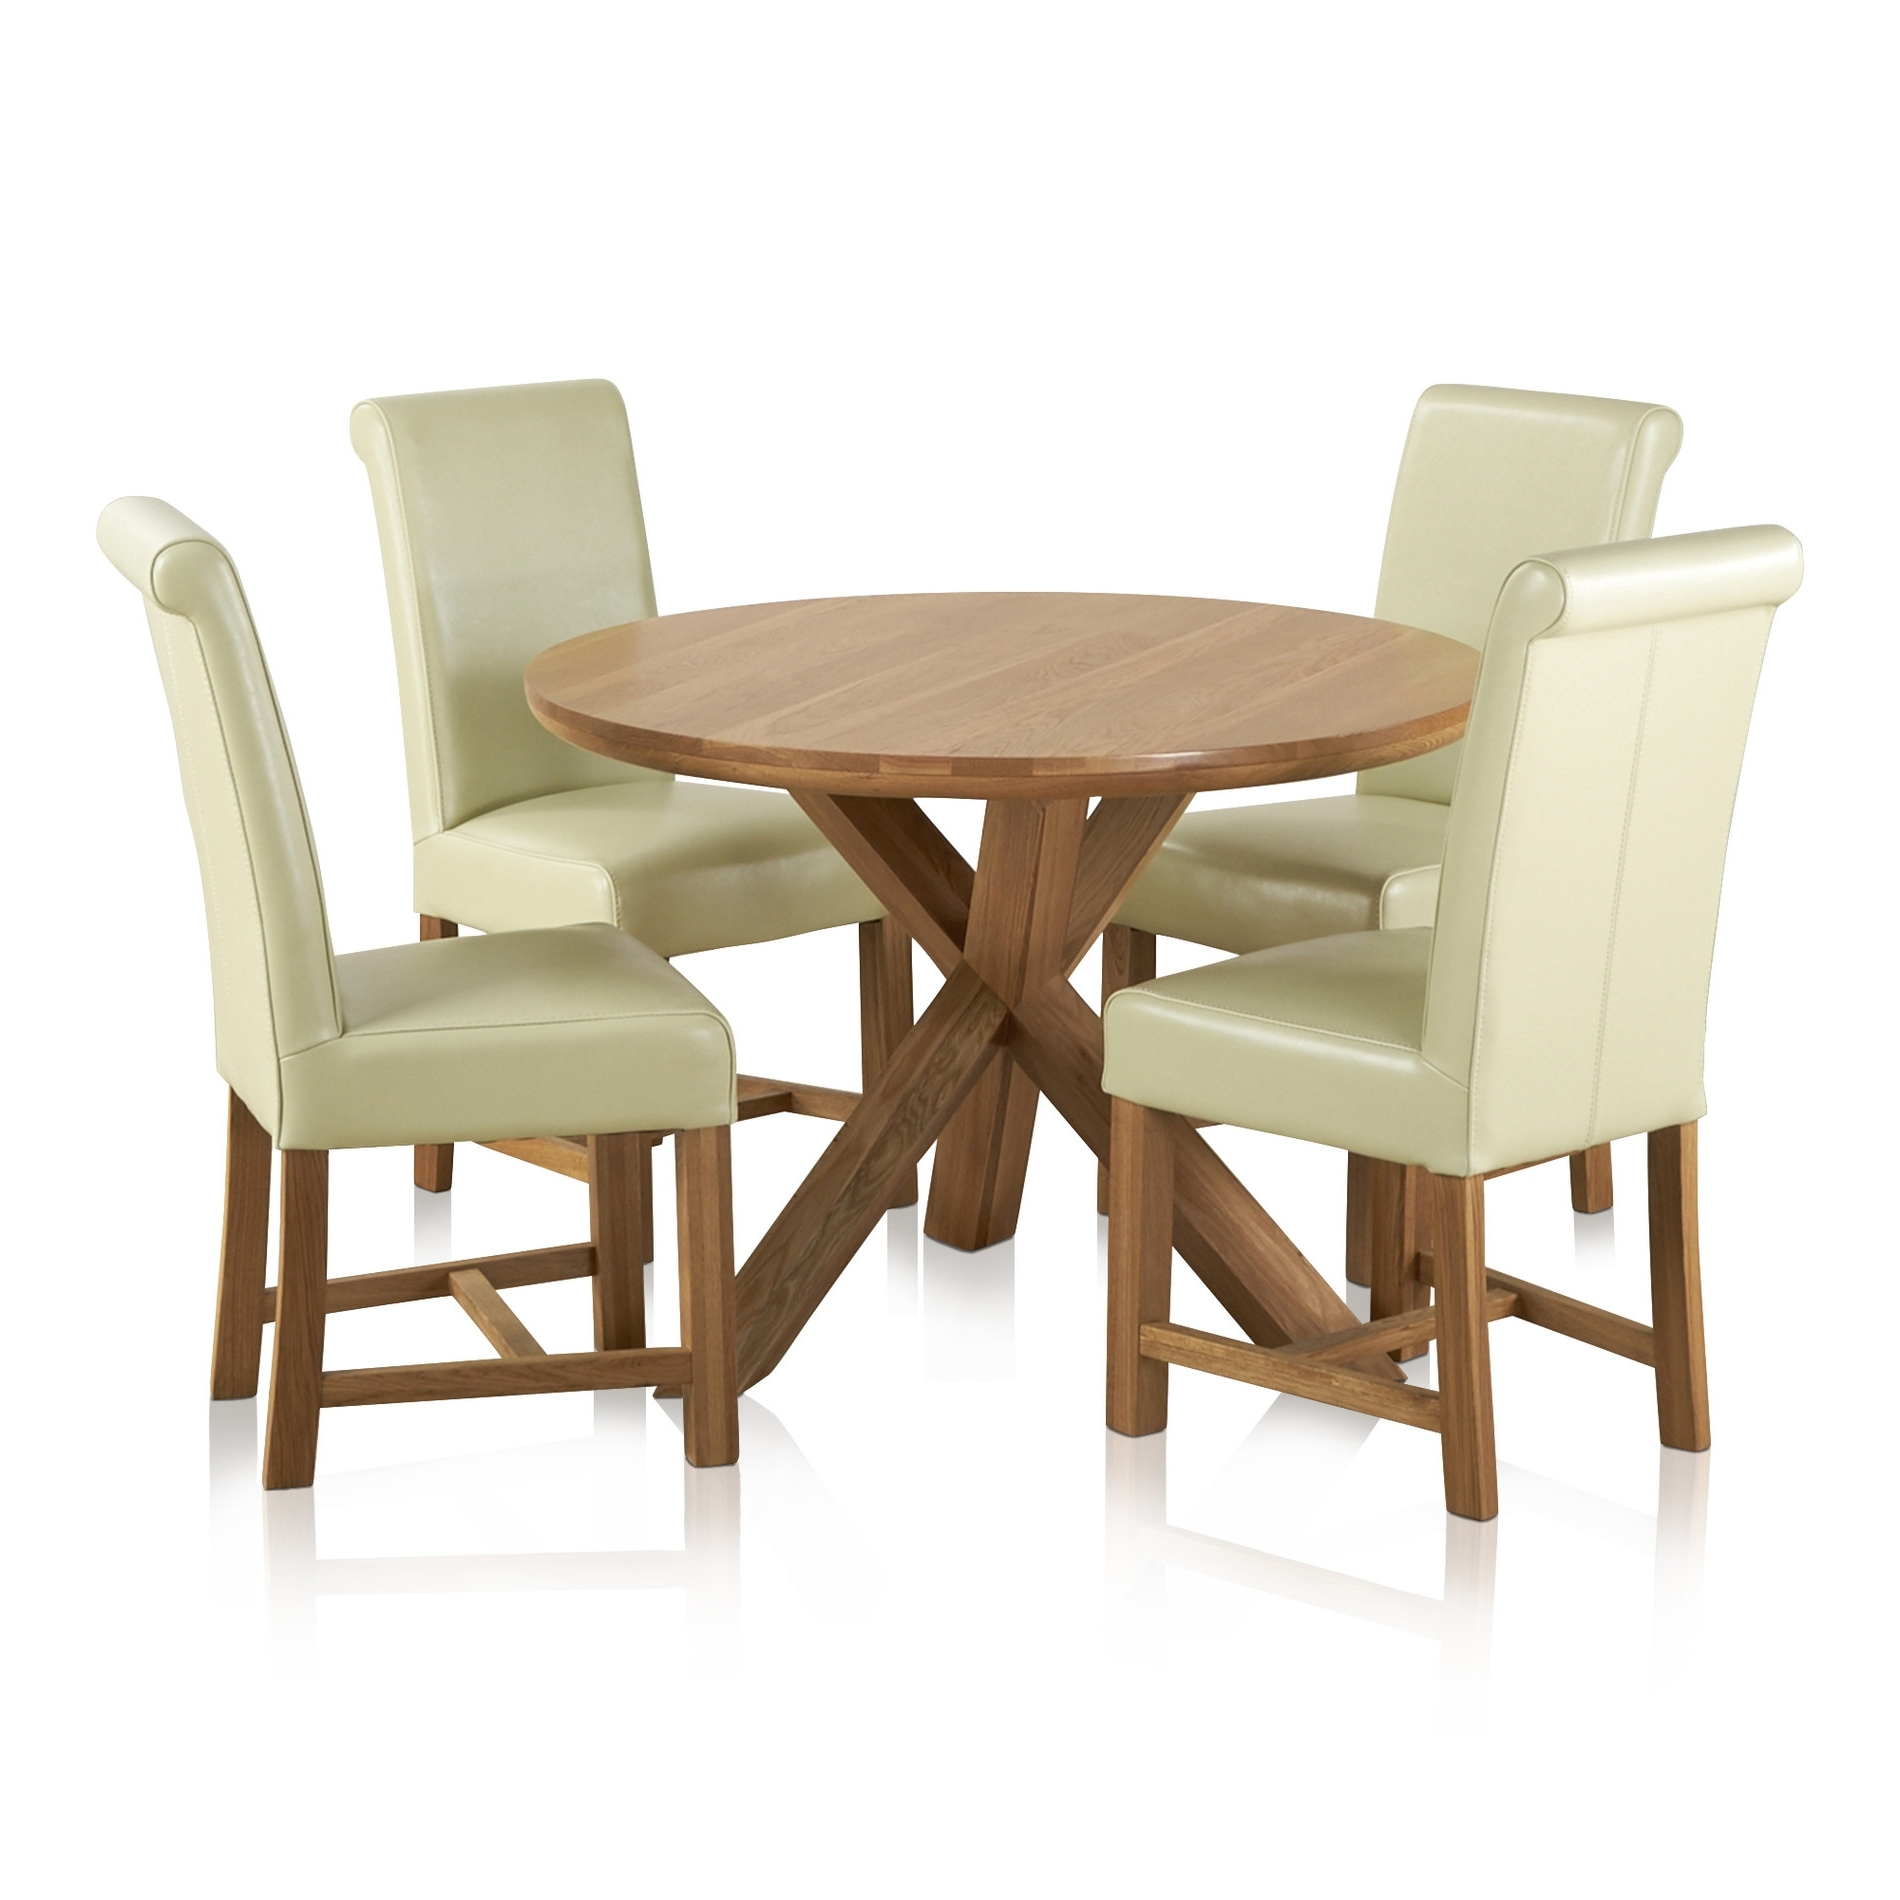 Cream And Oak Dining Tables Pertaining To Favorite Natural Oak Round Dining Set: Table + 4 Cream Leather Chairs (View 8 of 25)